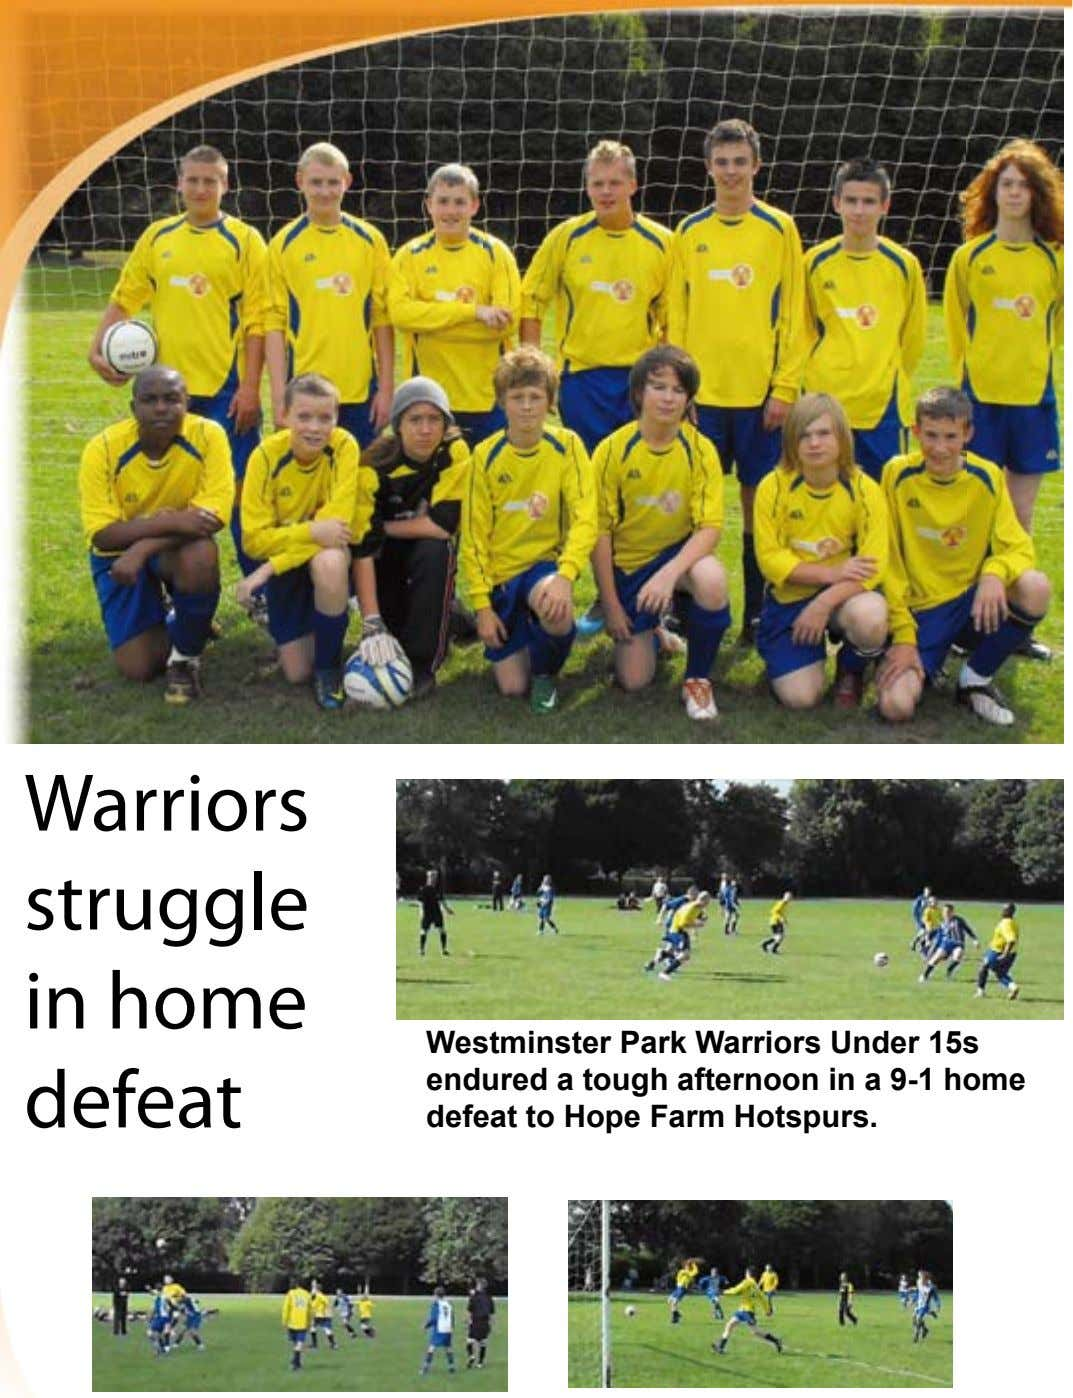 Warriors struggle in home defeat Westminster park Warriors under 15s endured a tough afternoon in